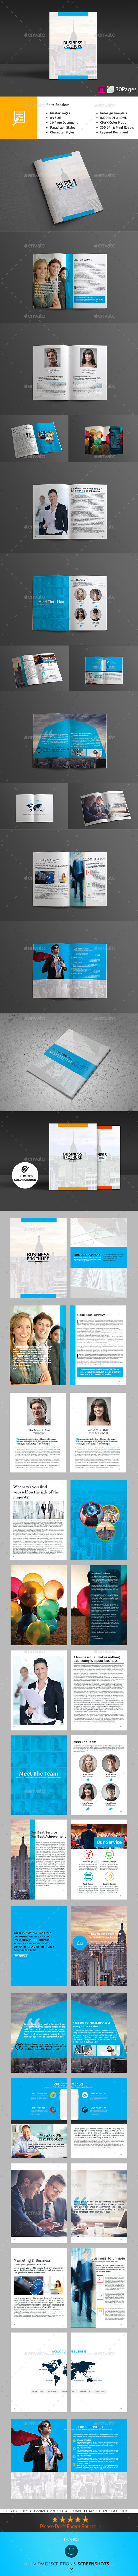 GraphicRiver Business Solution Brochure 30 Pages 9993499